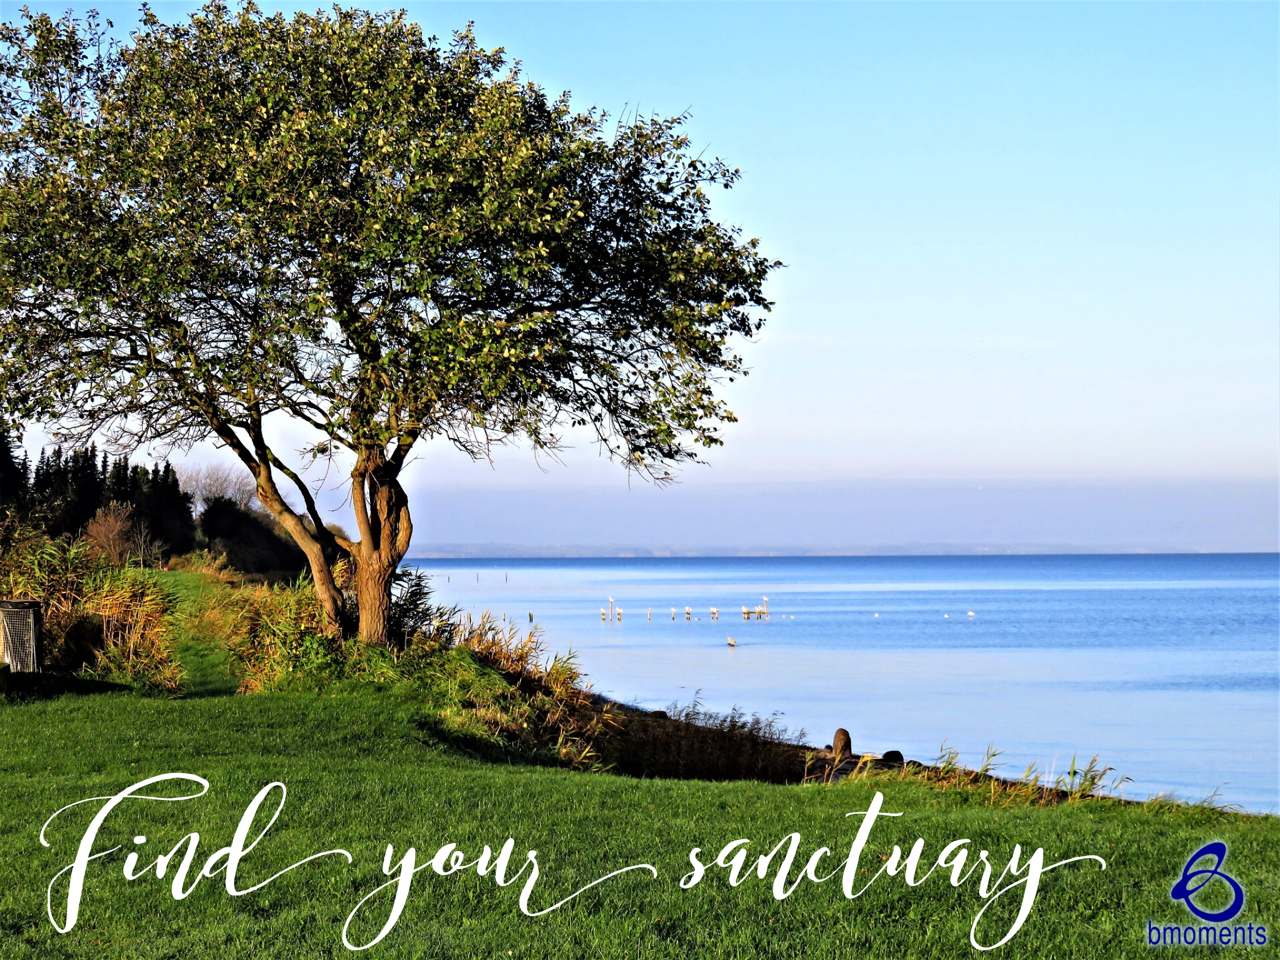 Get Closer to God Through Your Personal Sanctuary